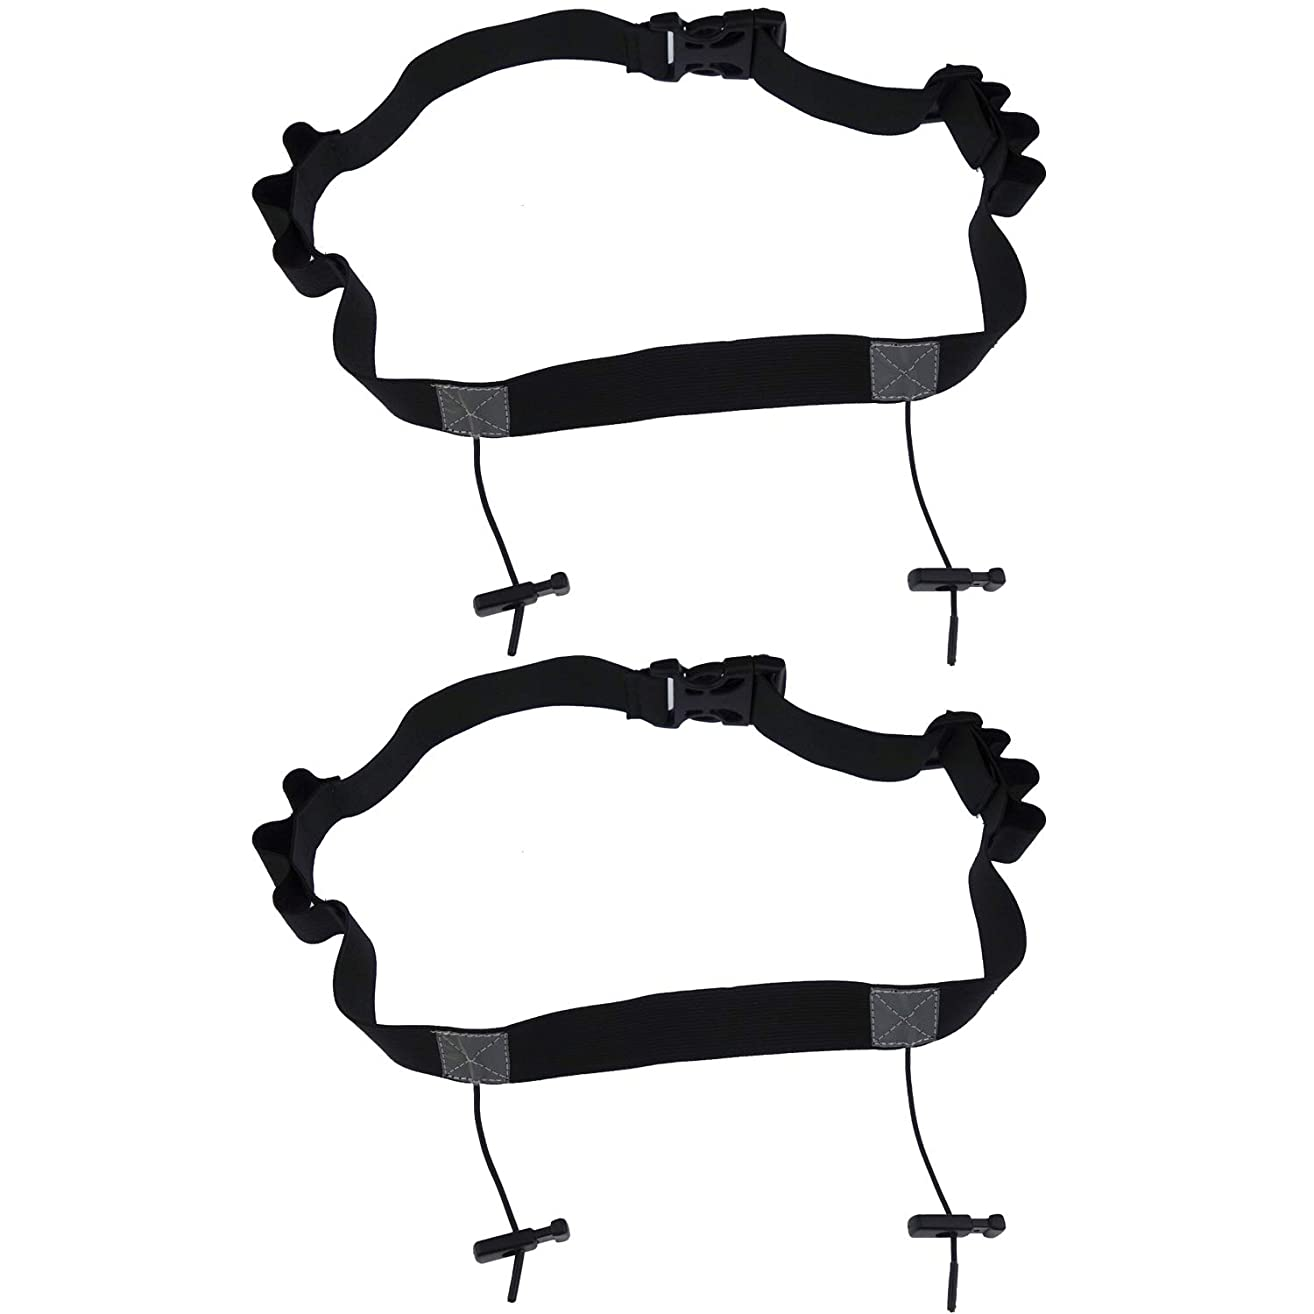 Kasteco 2 Pack Race Number Belt Running Bib Holder for for Running, Cycling, and Triathlon with 6 Gel Loops to attach energy gel